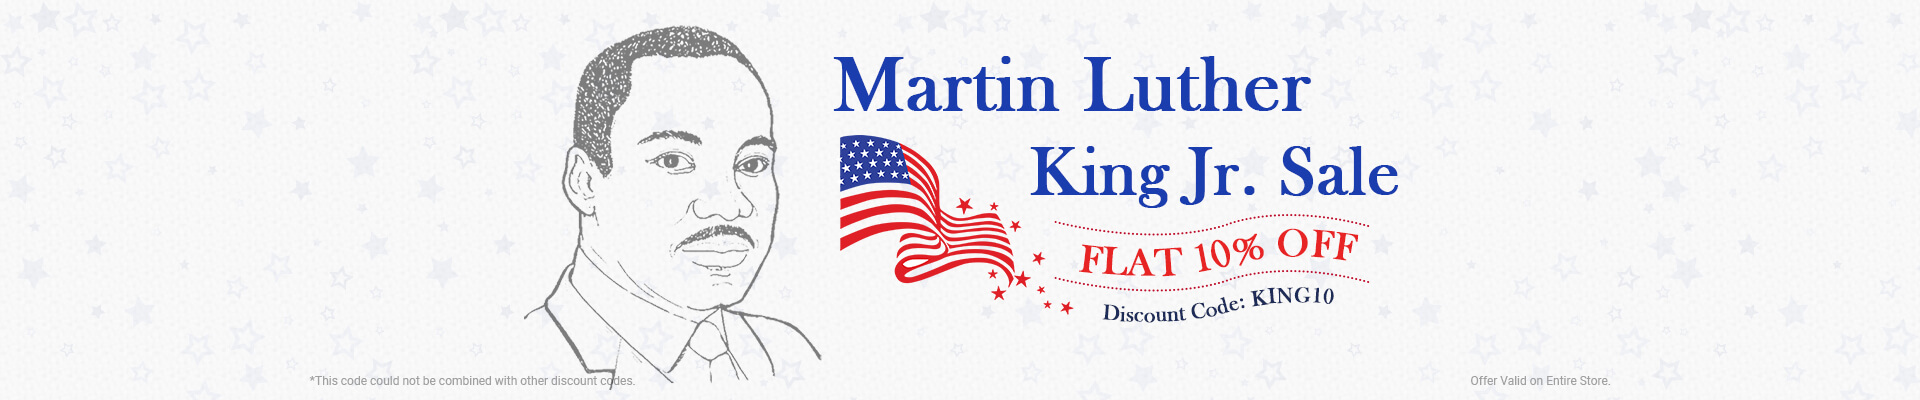 Martin Luther King Jr. Sale